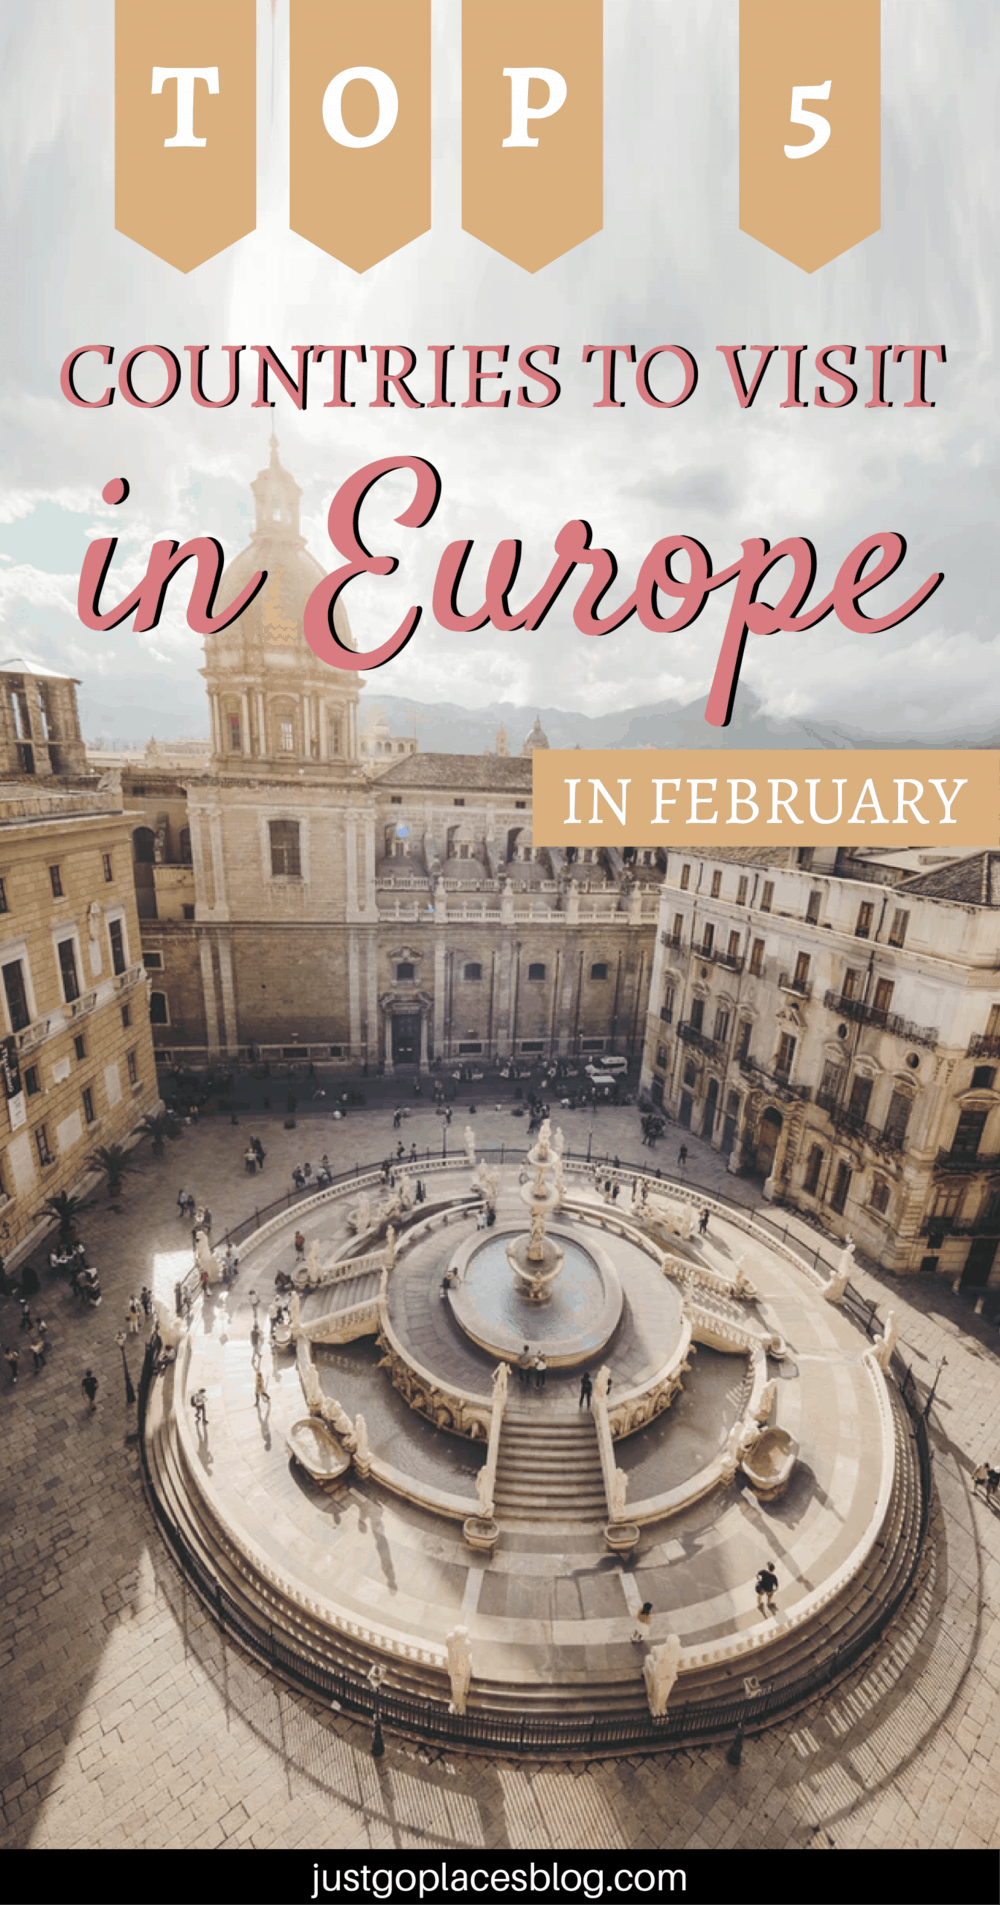 Top 5 Countries To Visit in February in Europe